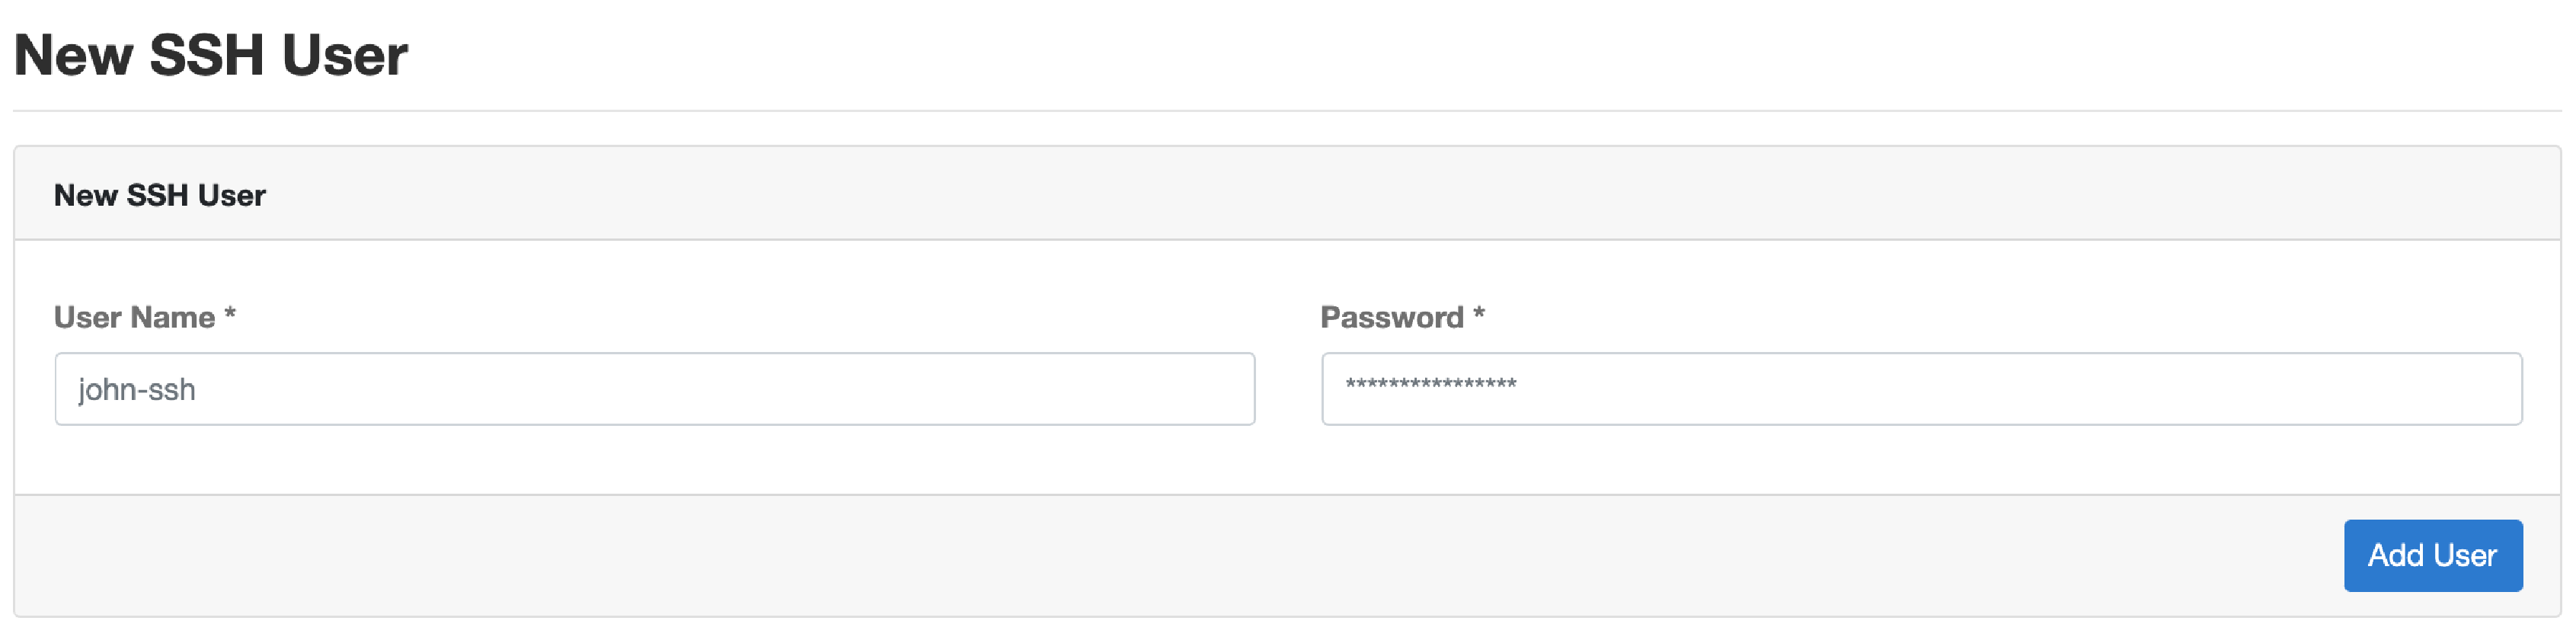 CloudPanel User Management SSH/SFTP Users